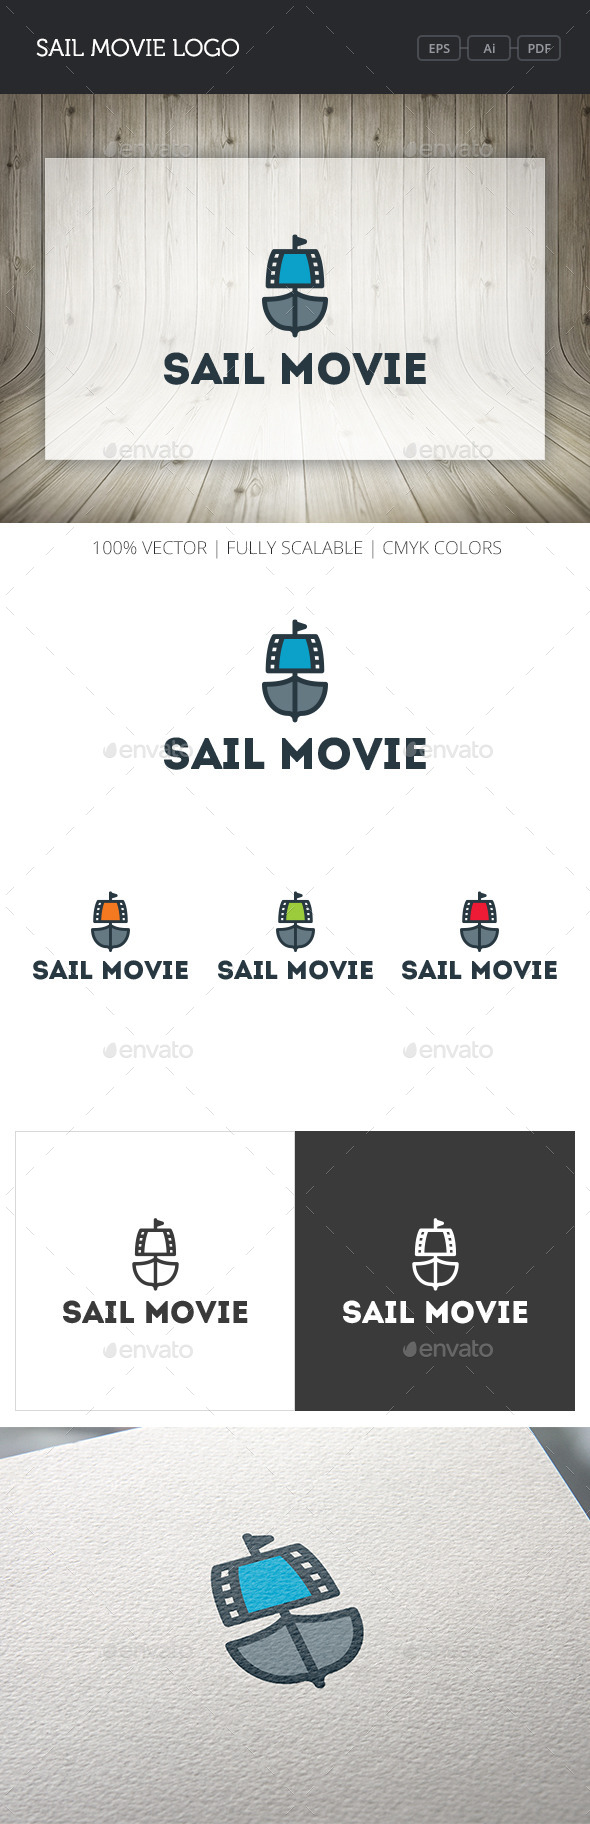 GraphicRiver Sail Movie Logo 11016234